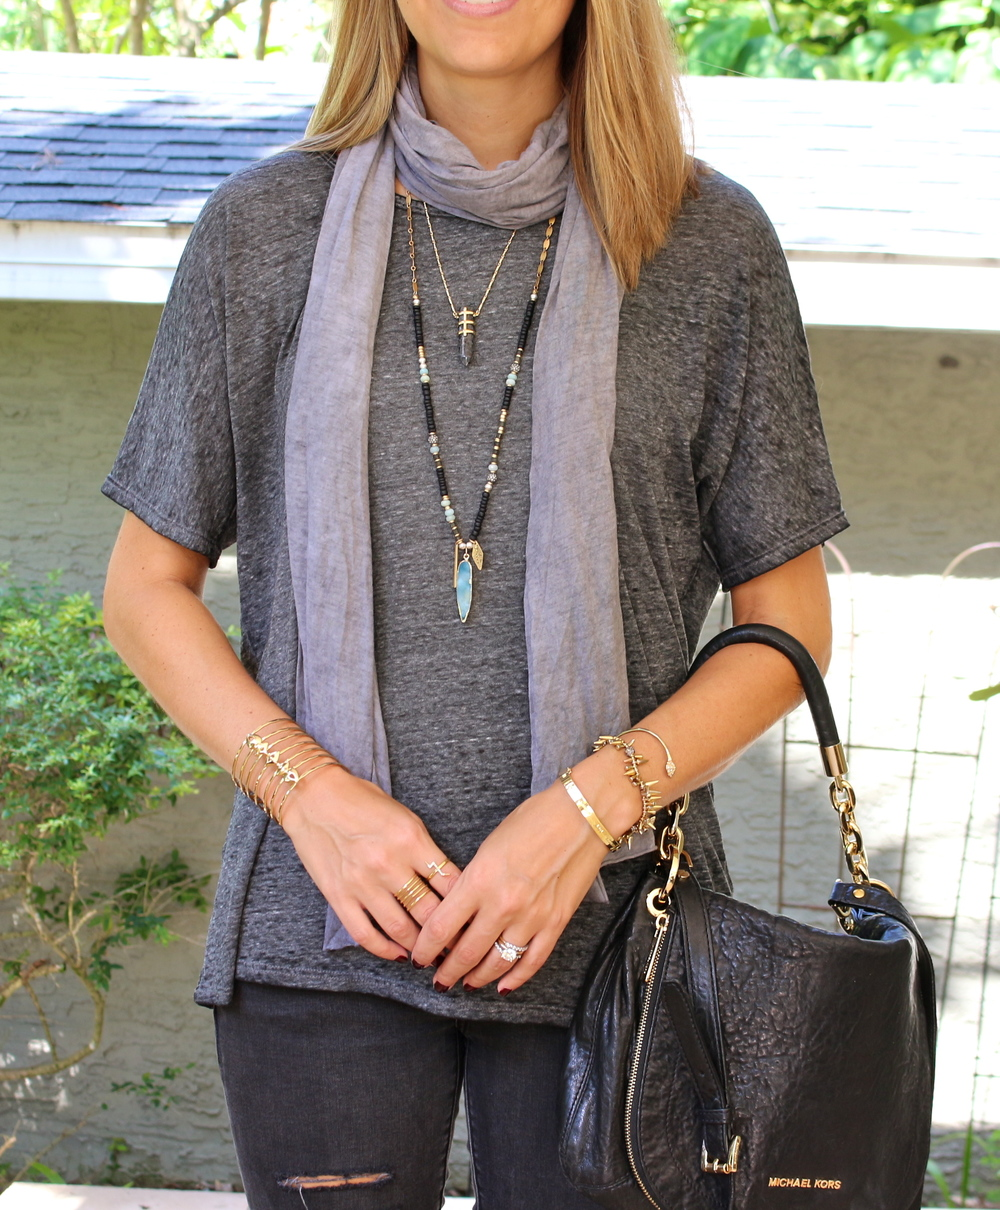 Stella & Dot necklaces, gray tee, black jeans